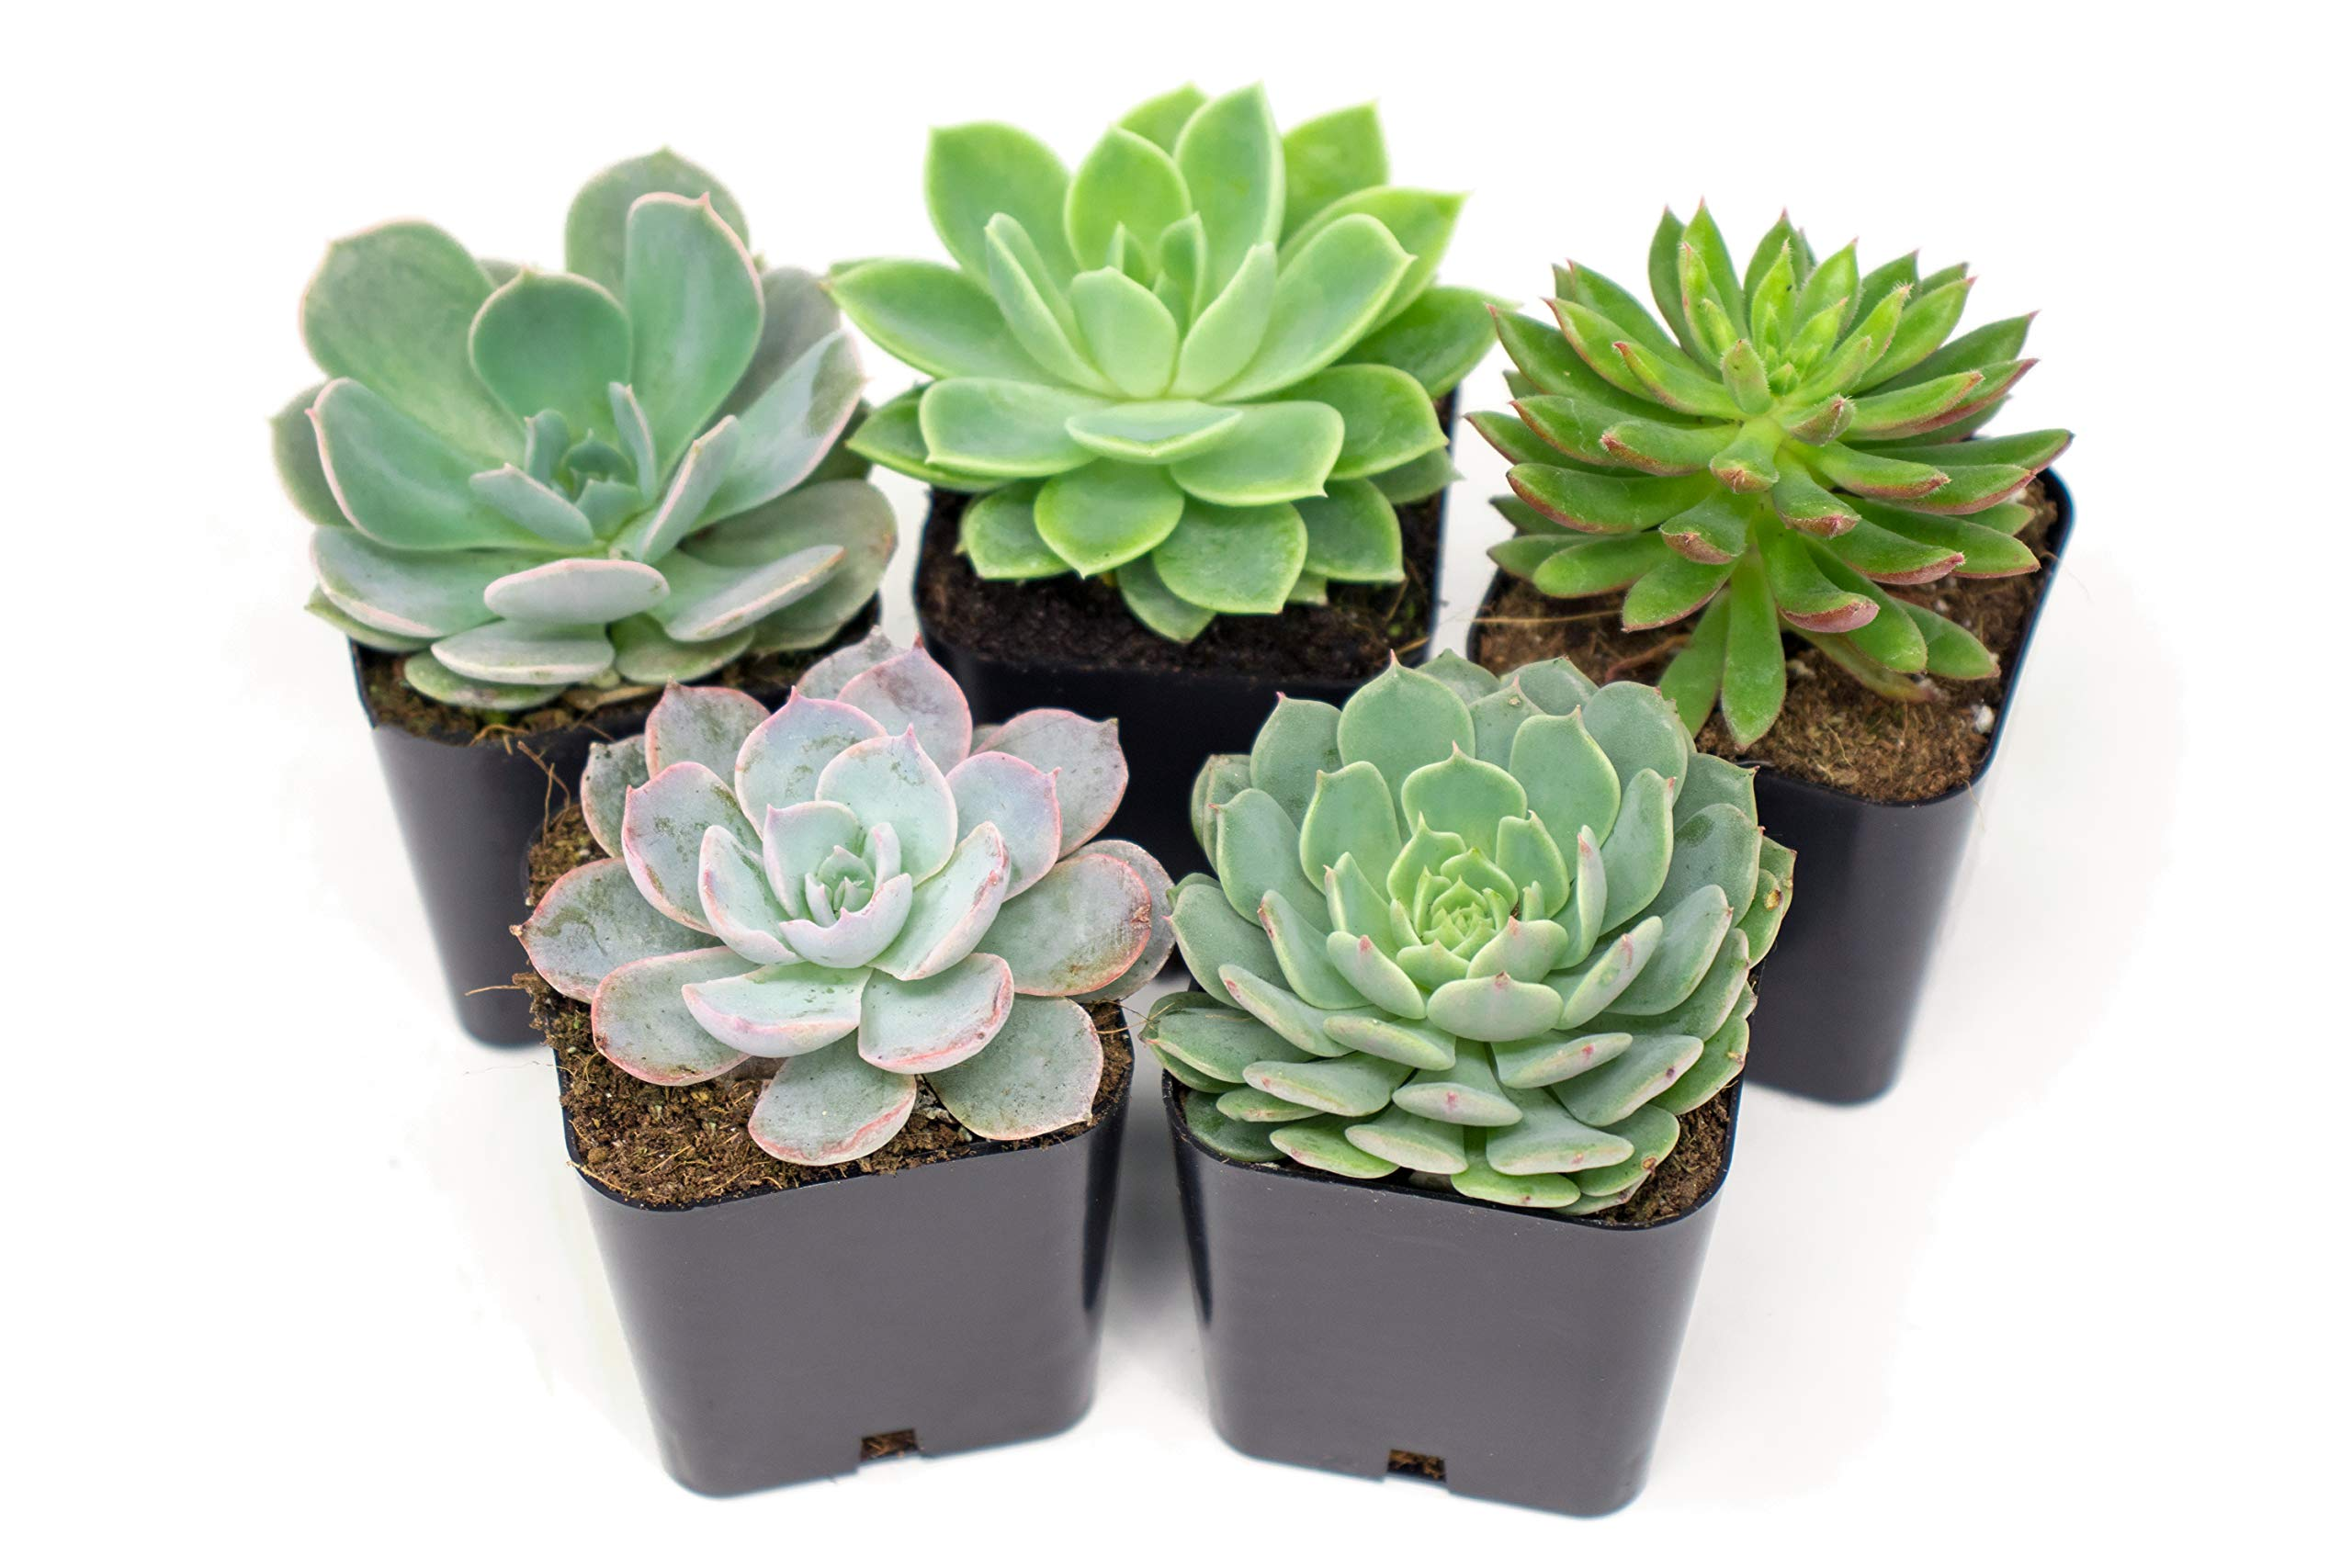 Succulent Plants | 5 Echeveria Succulents | Rooted in Planter Pots with Soil | Real Live Indoor Plants | Gifts or Room Decor by Plants for Pets